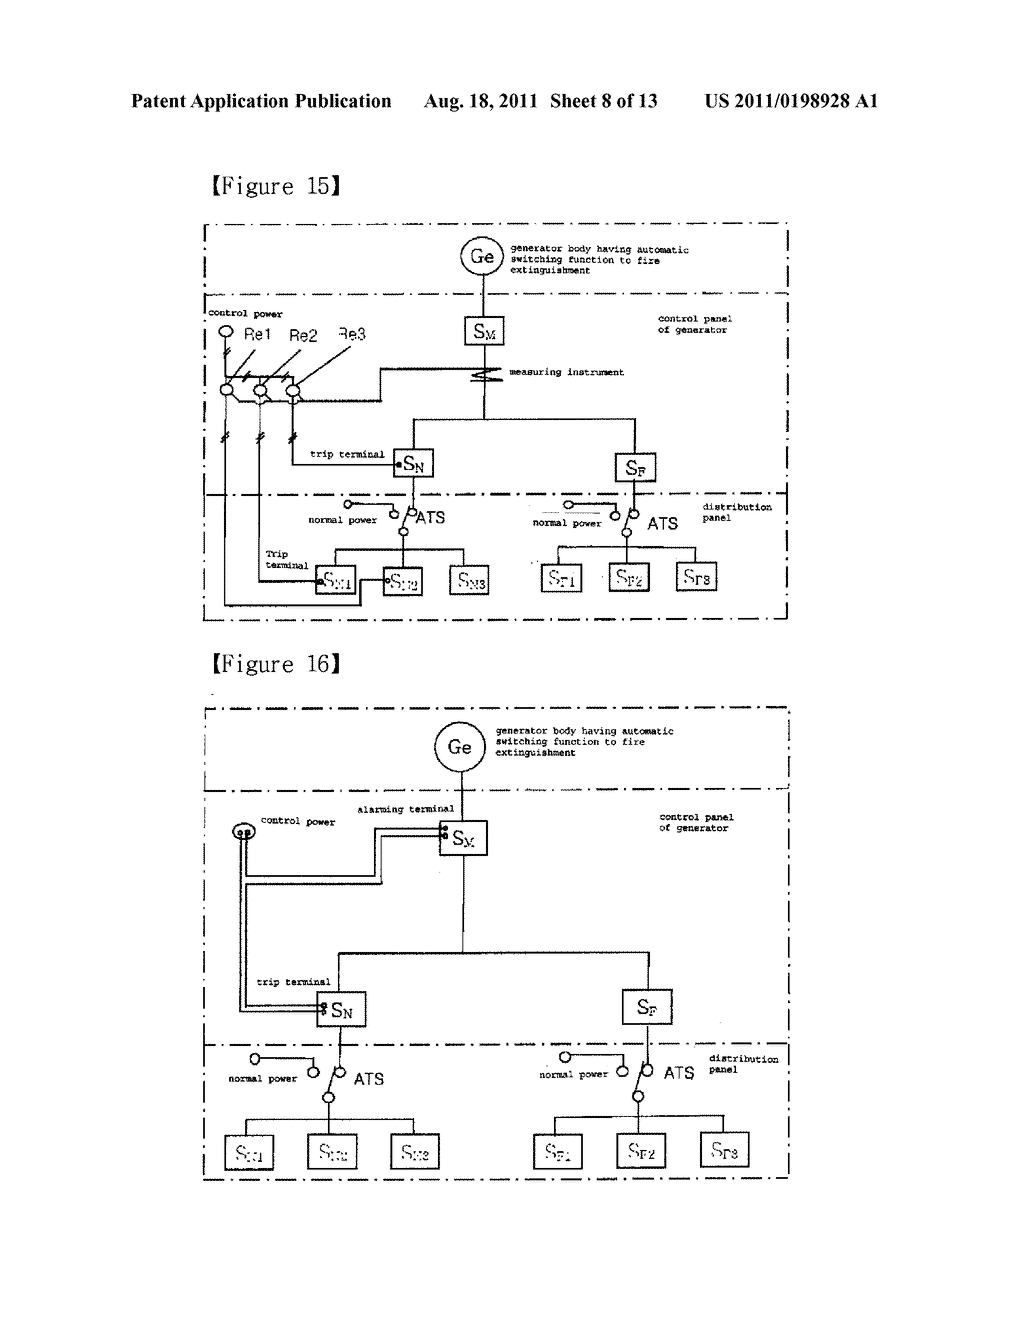 hight resolution of emergency generator power system with reserved fire protection power diagram schematic and image 09